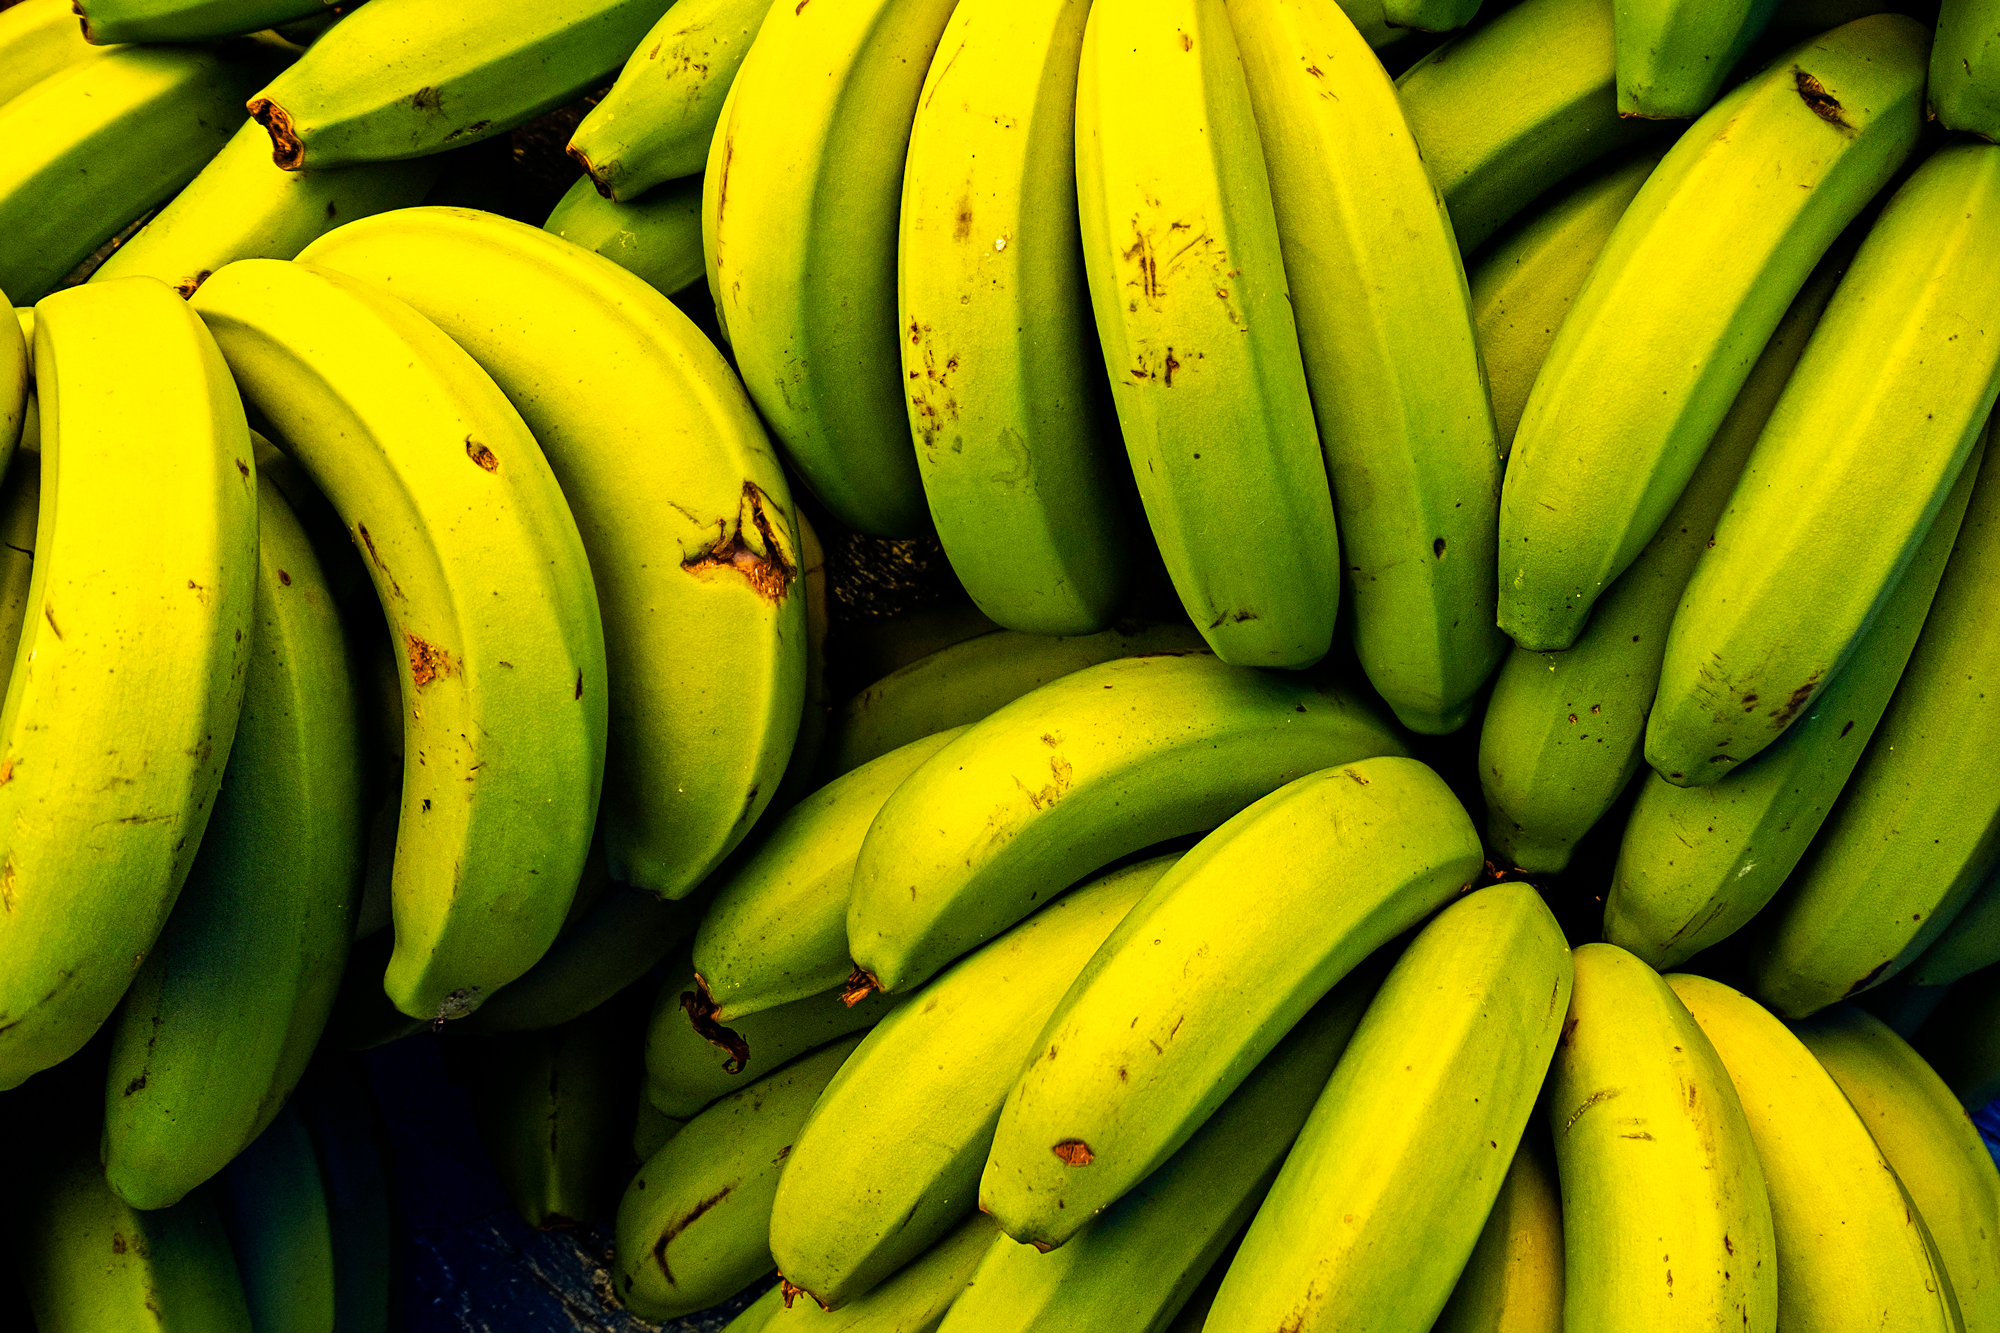 Bunches of unripe bananas